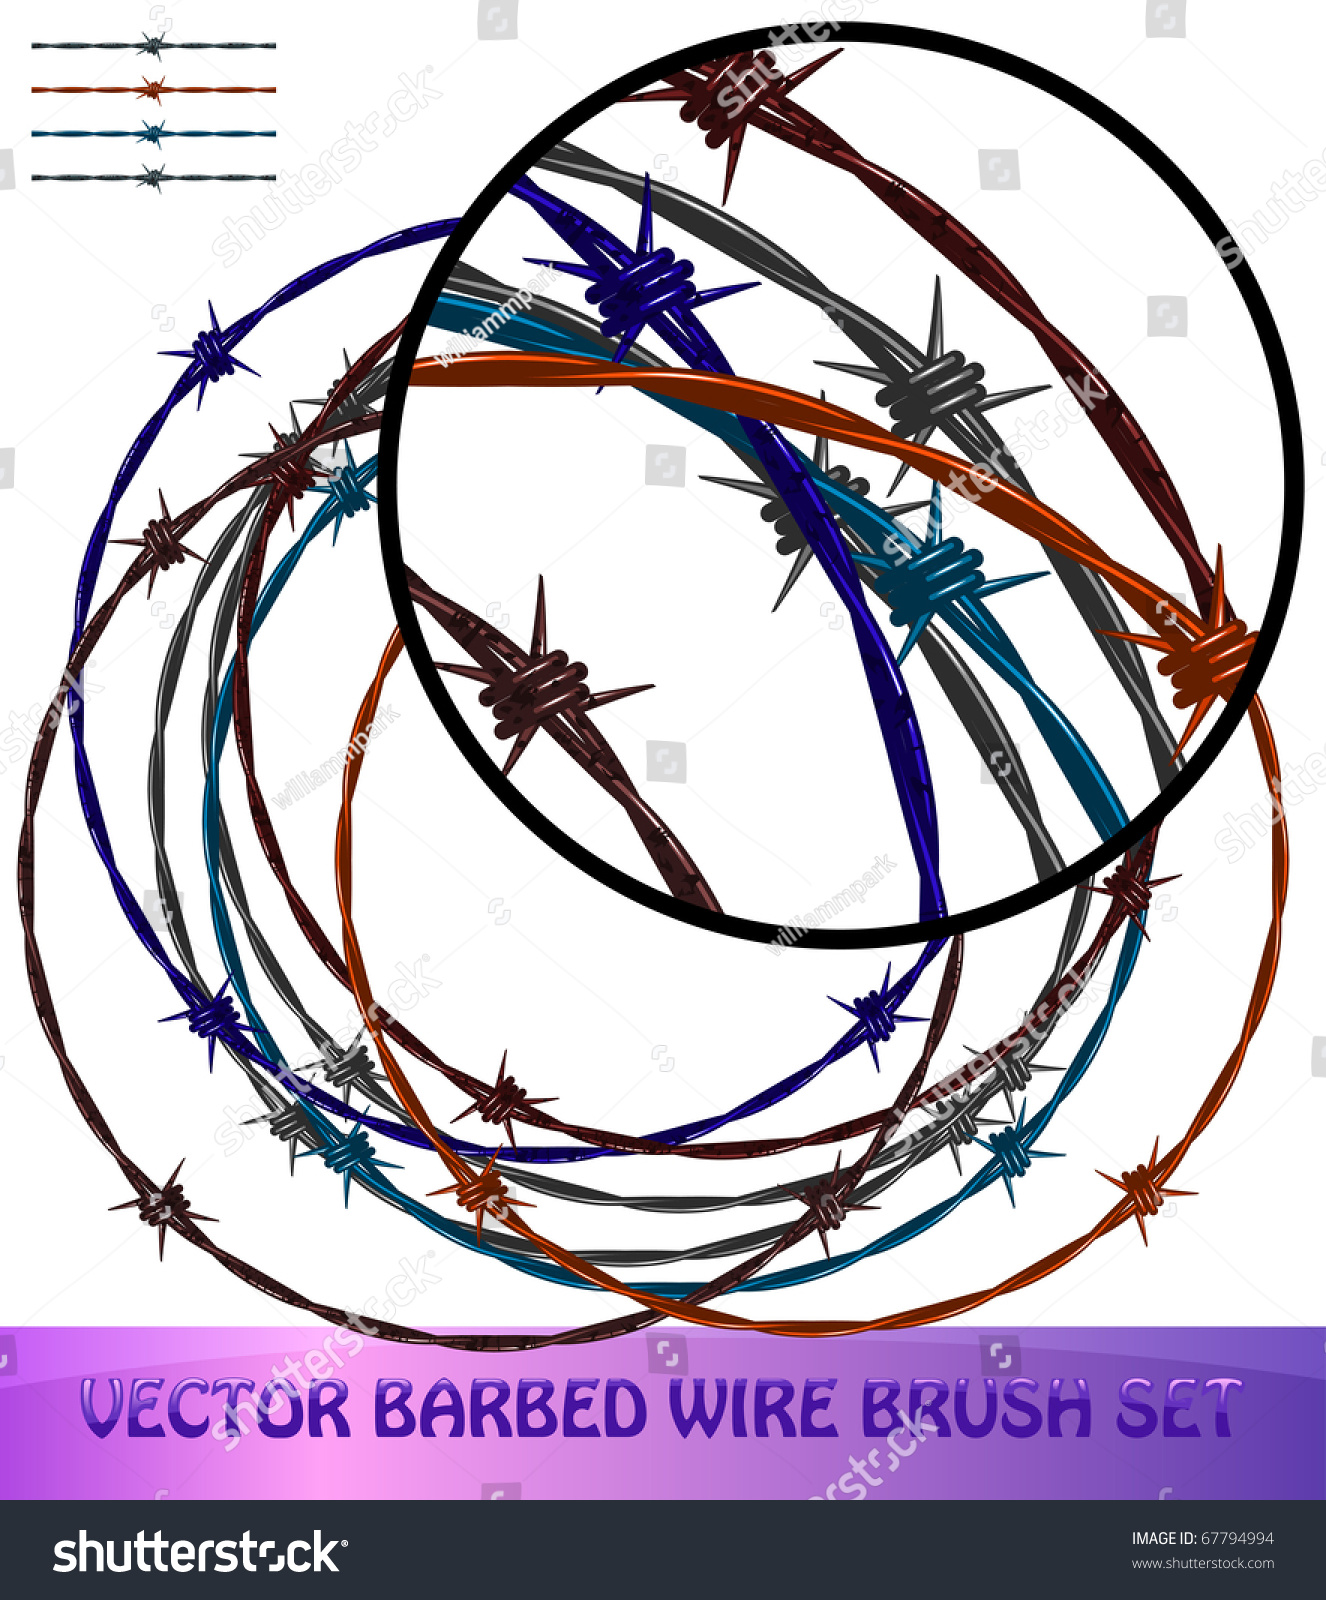 Barbed wire brushes stock vector shutterstock